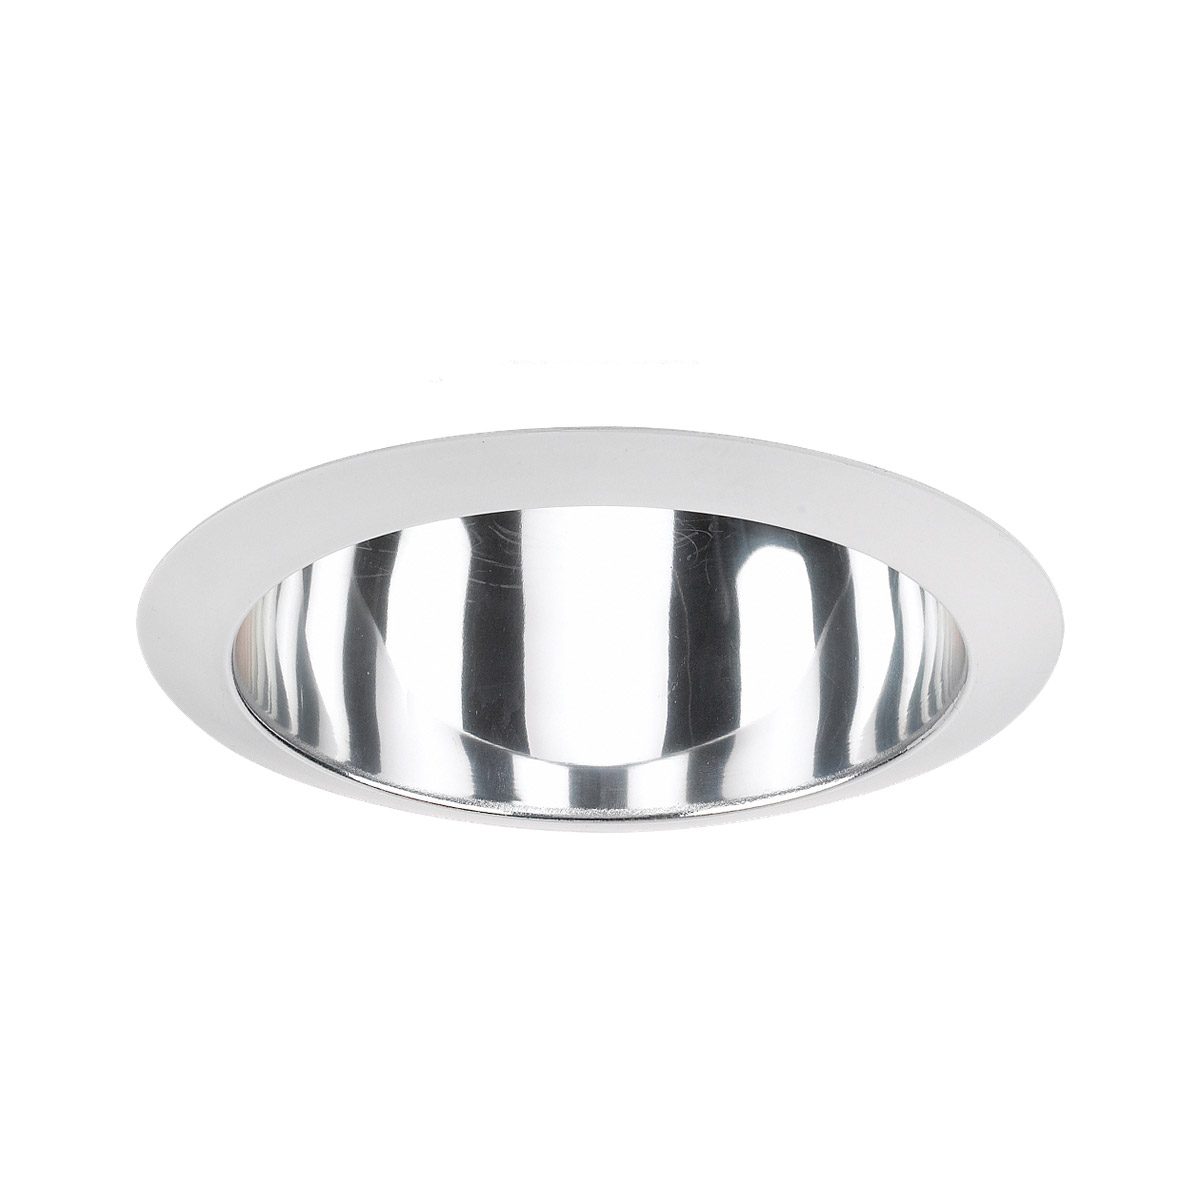 Sea Gull Lighting Signature Recessed Trim Only in Polished Aluminum 11032AT-22 photo